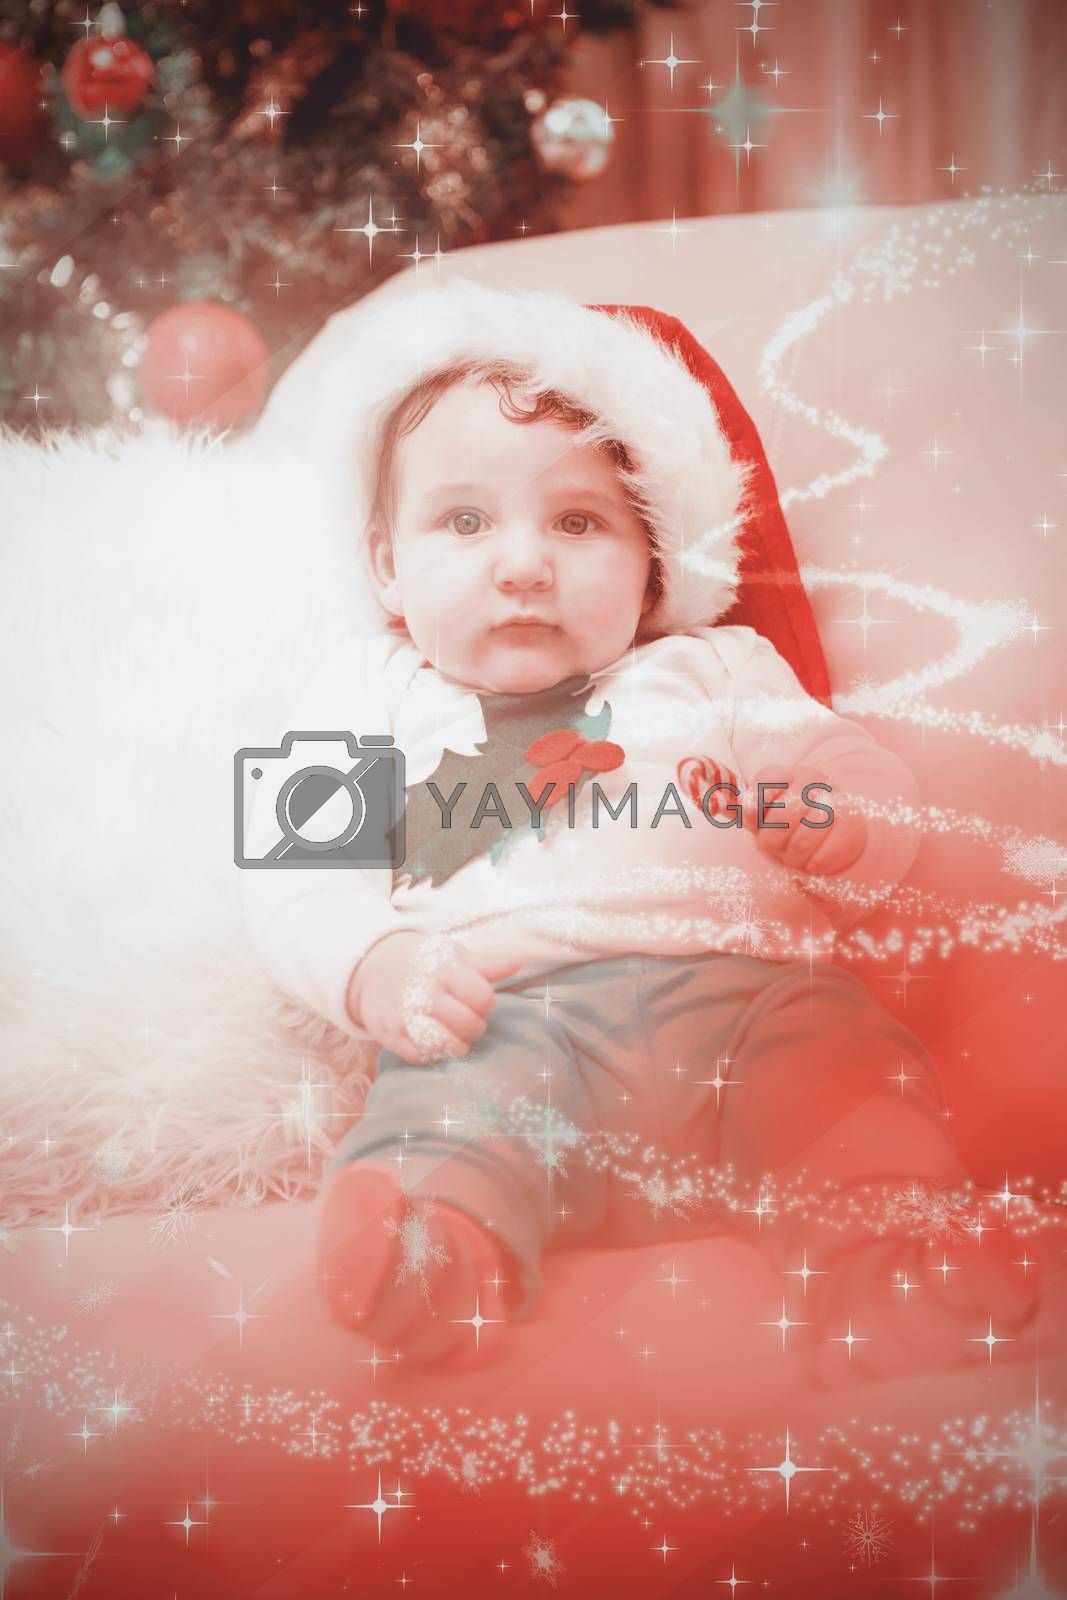 Cute baby boy on couch at christmas against glittering christmas tree design